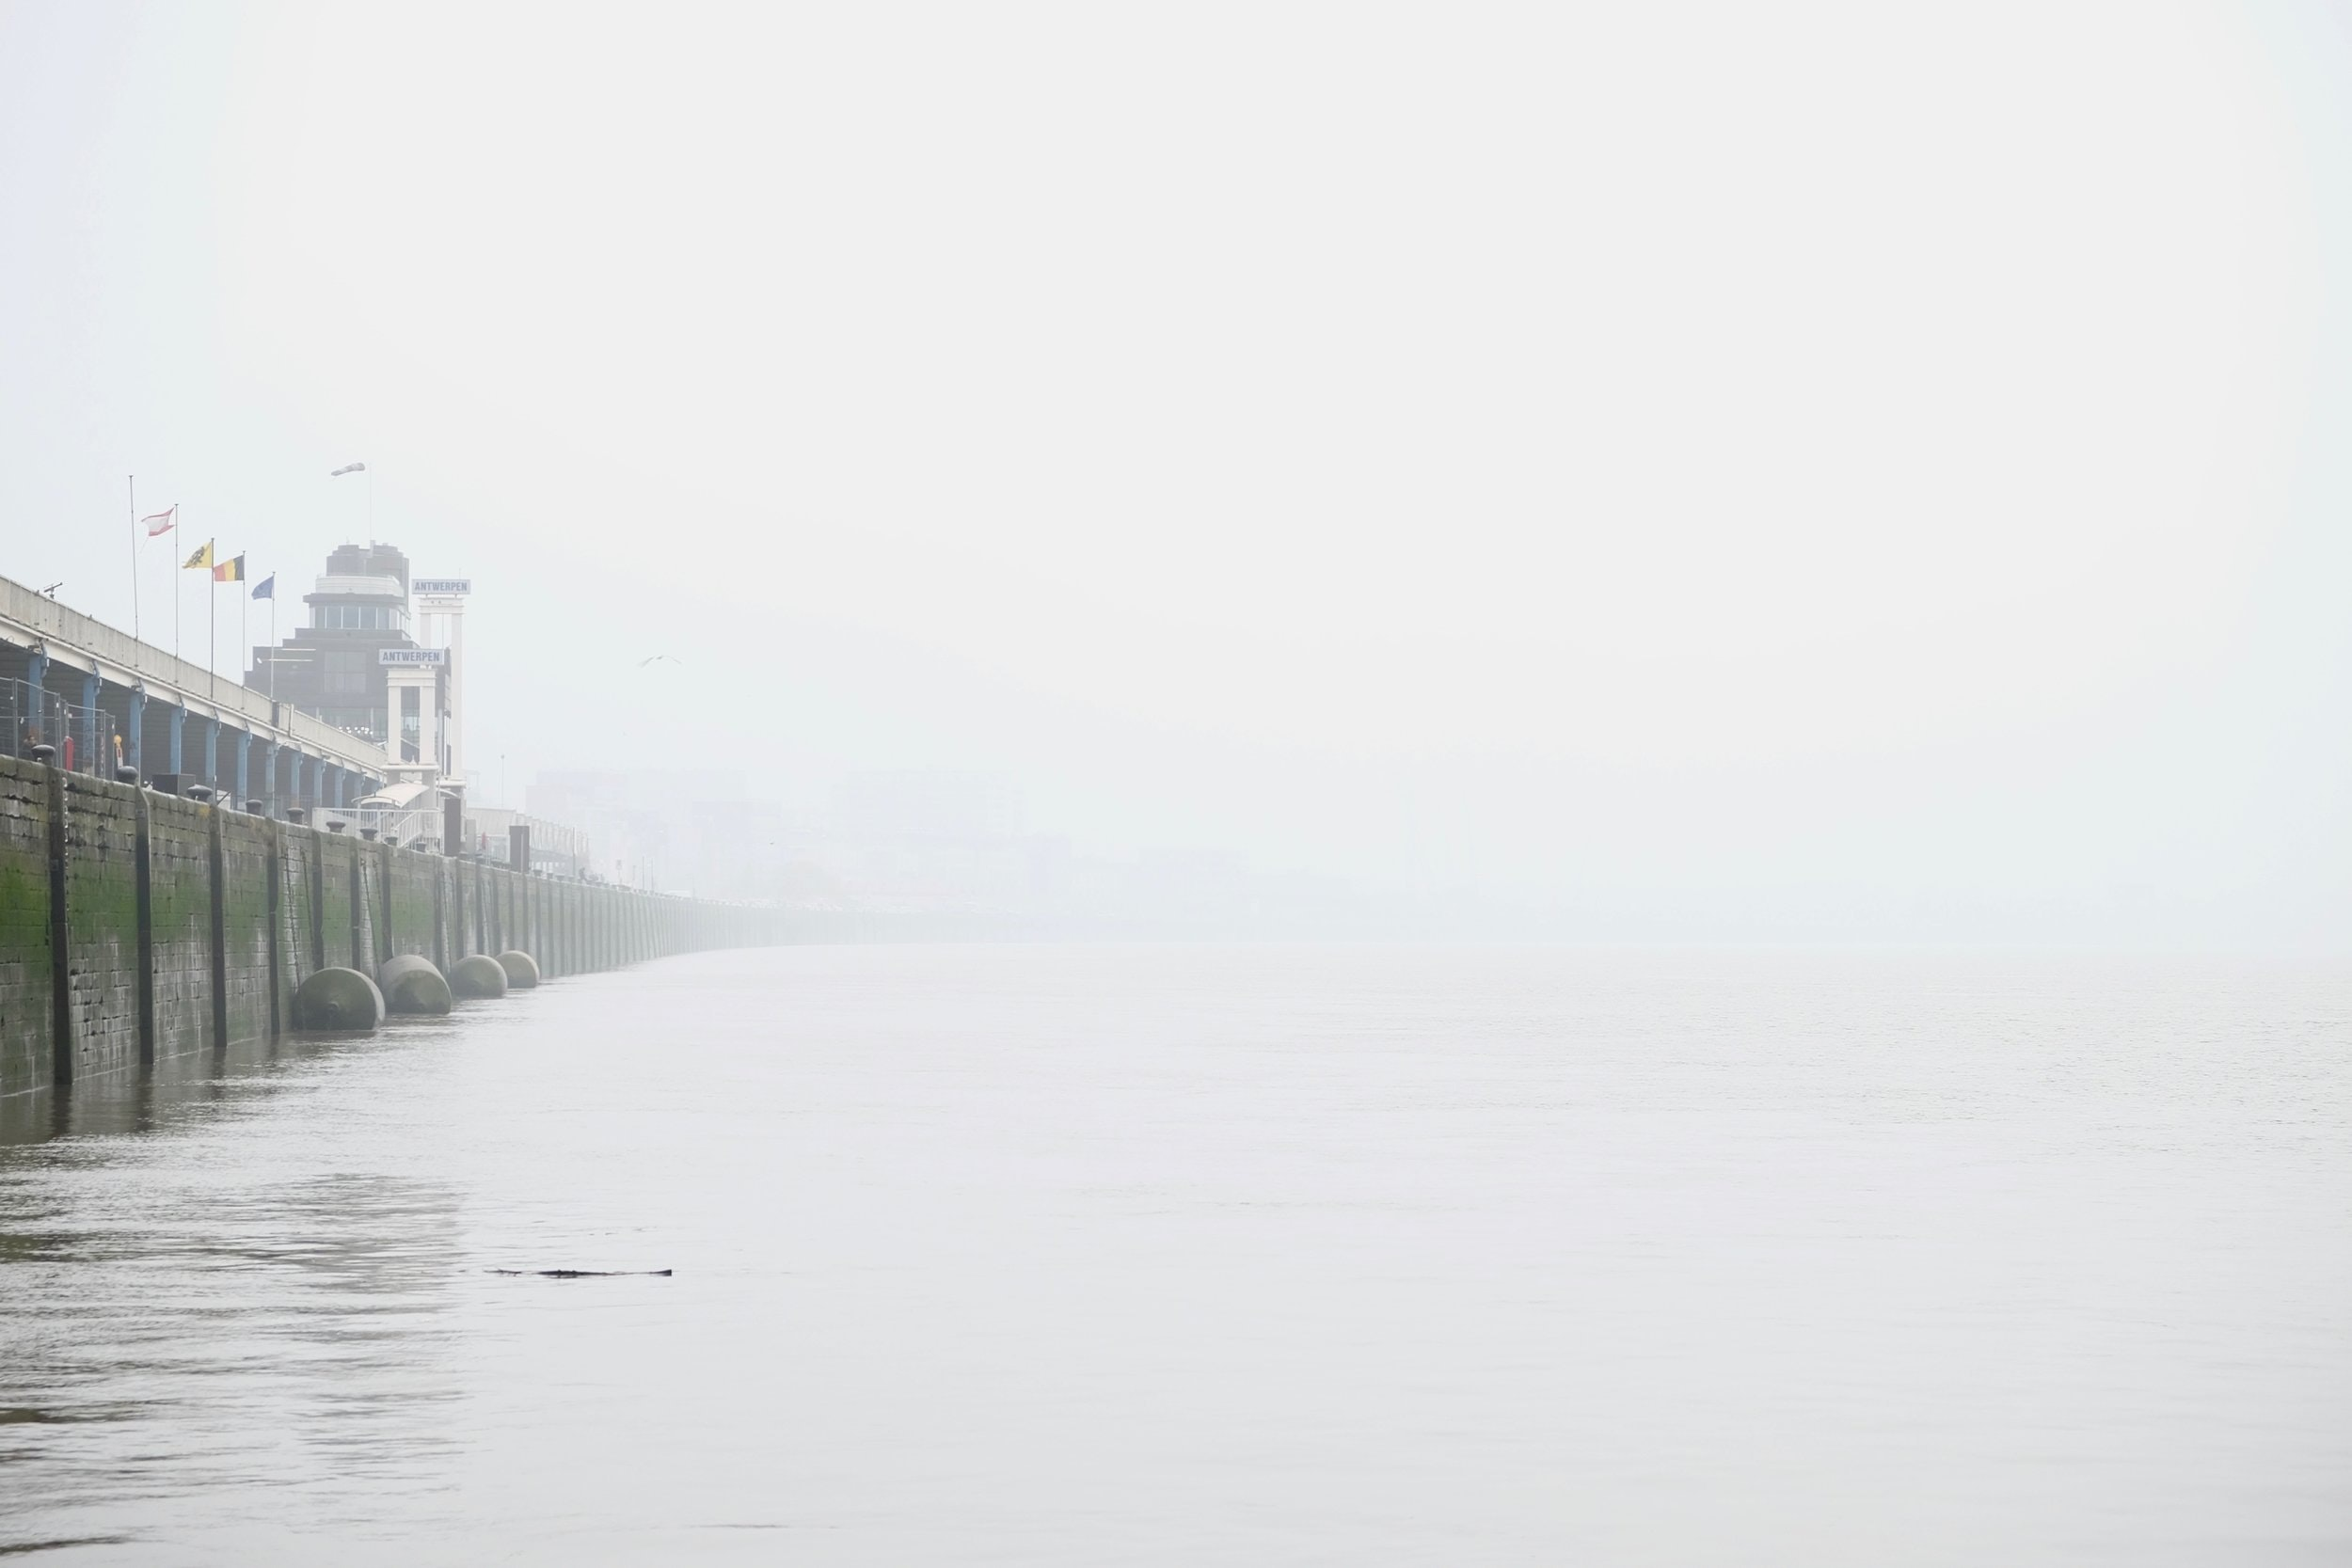 Wall by the seaside on a foggy morning in Antwerp